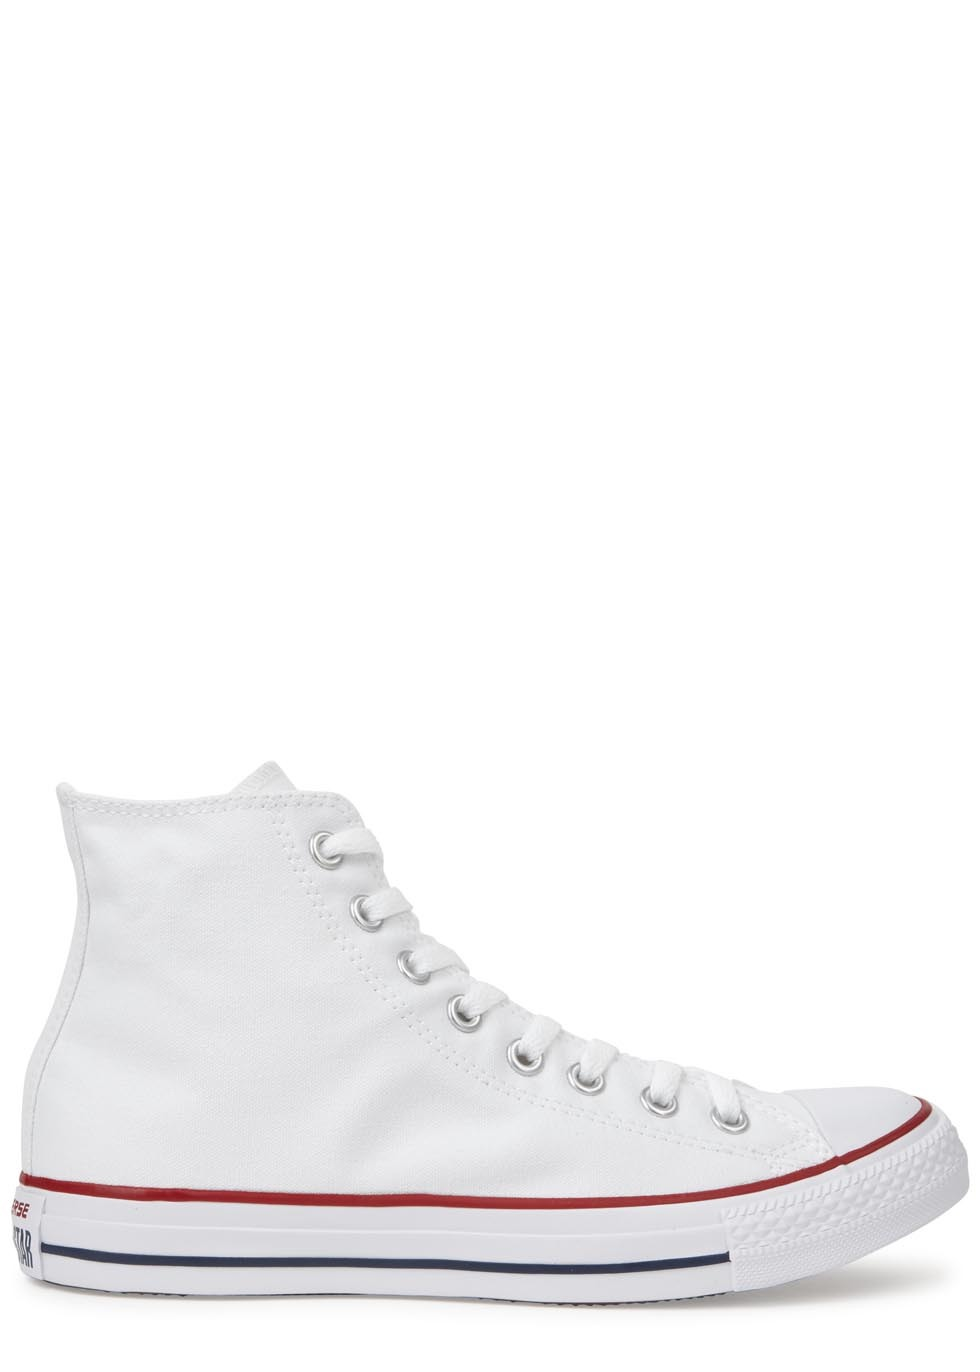 Chuck Taylor White Hi Top Trainers - predominant colour: white; occasions: casual; material: fabric; heel height: flat; toe: round toe; style: trainers; finish: plain; pattern: plain; season: s/s 2016; wardrobe: basic